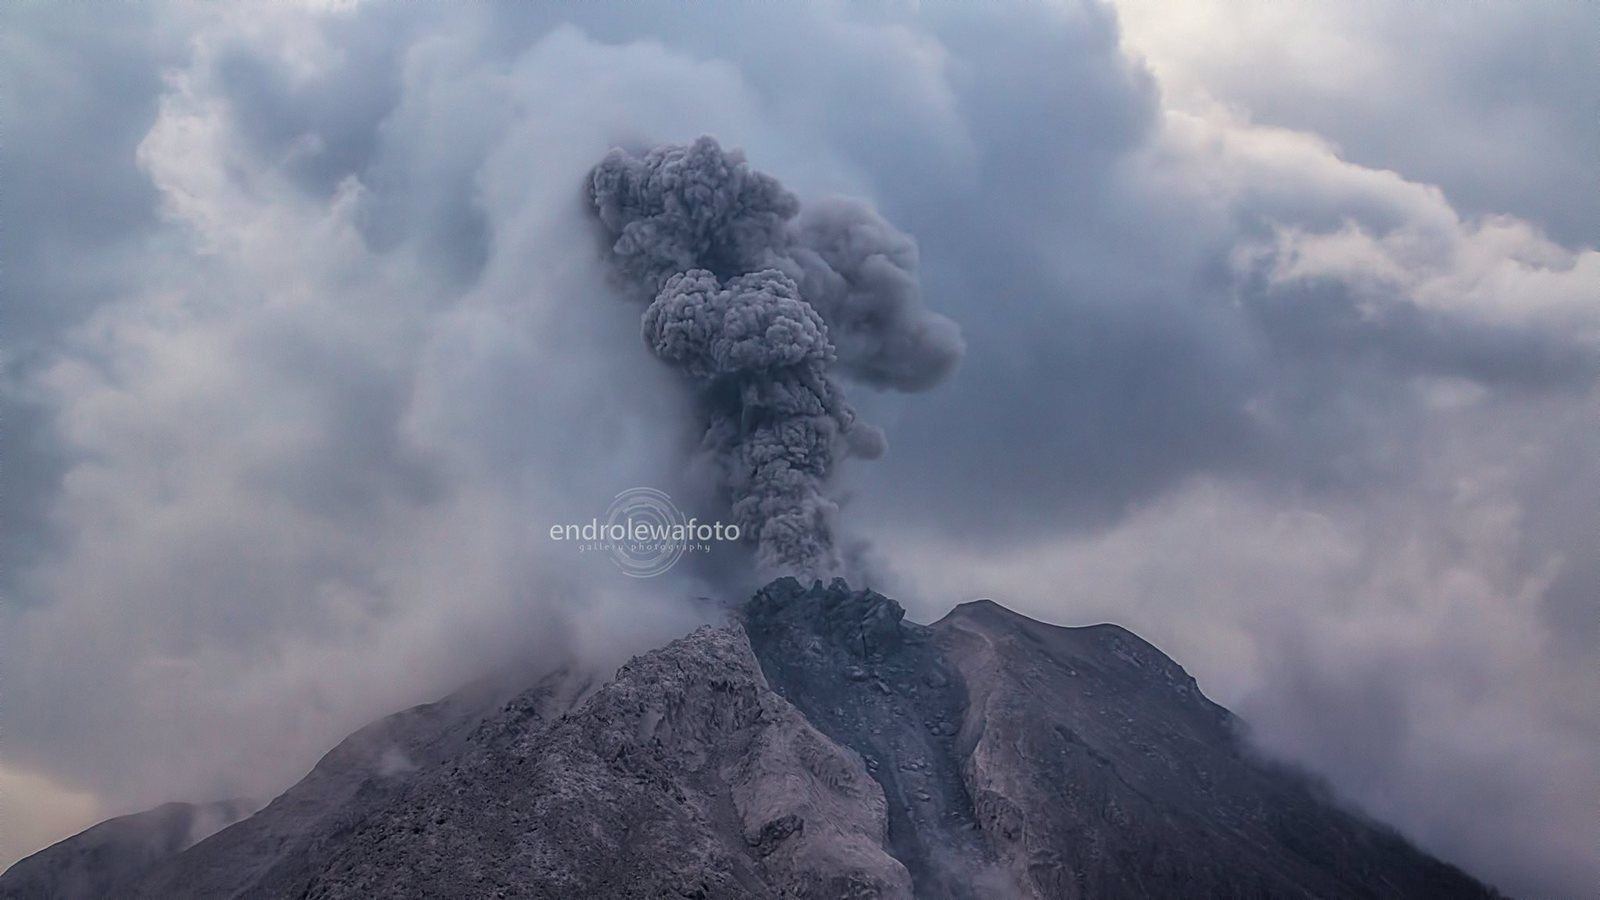 Sinabung depuis Payaung - 29.03.2016 / 17h23 - photo Endrolewa